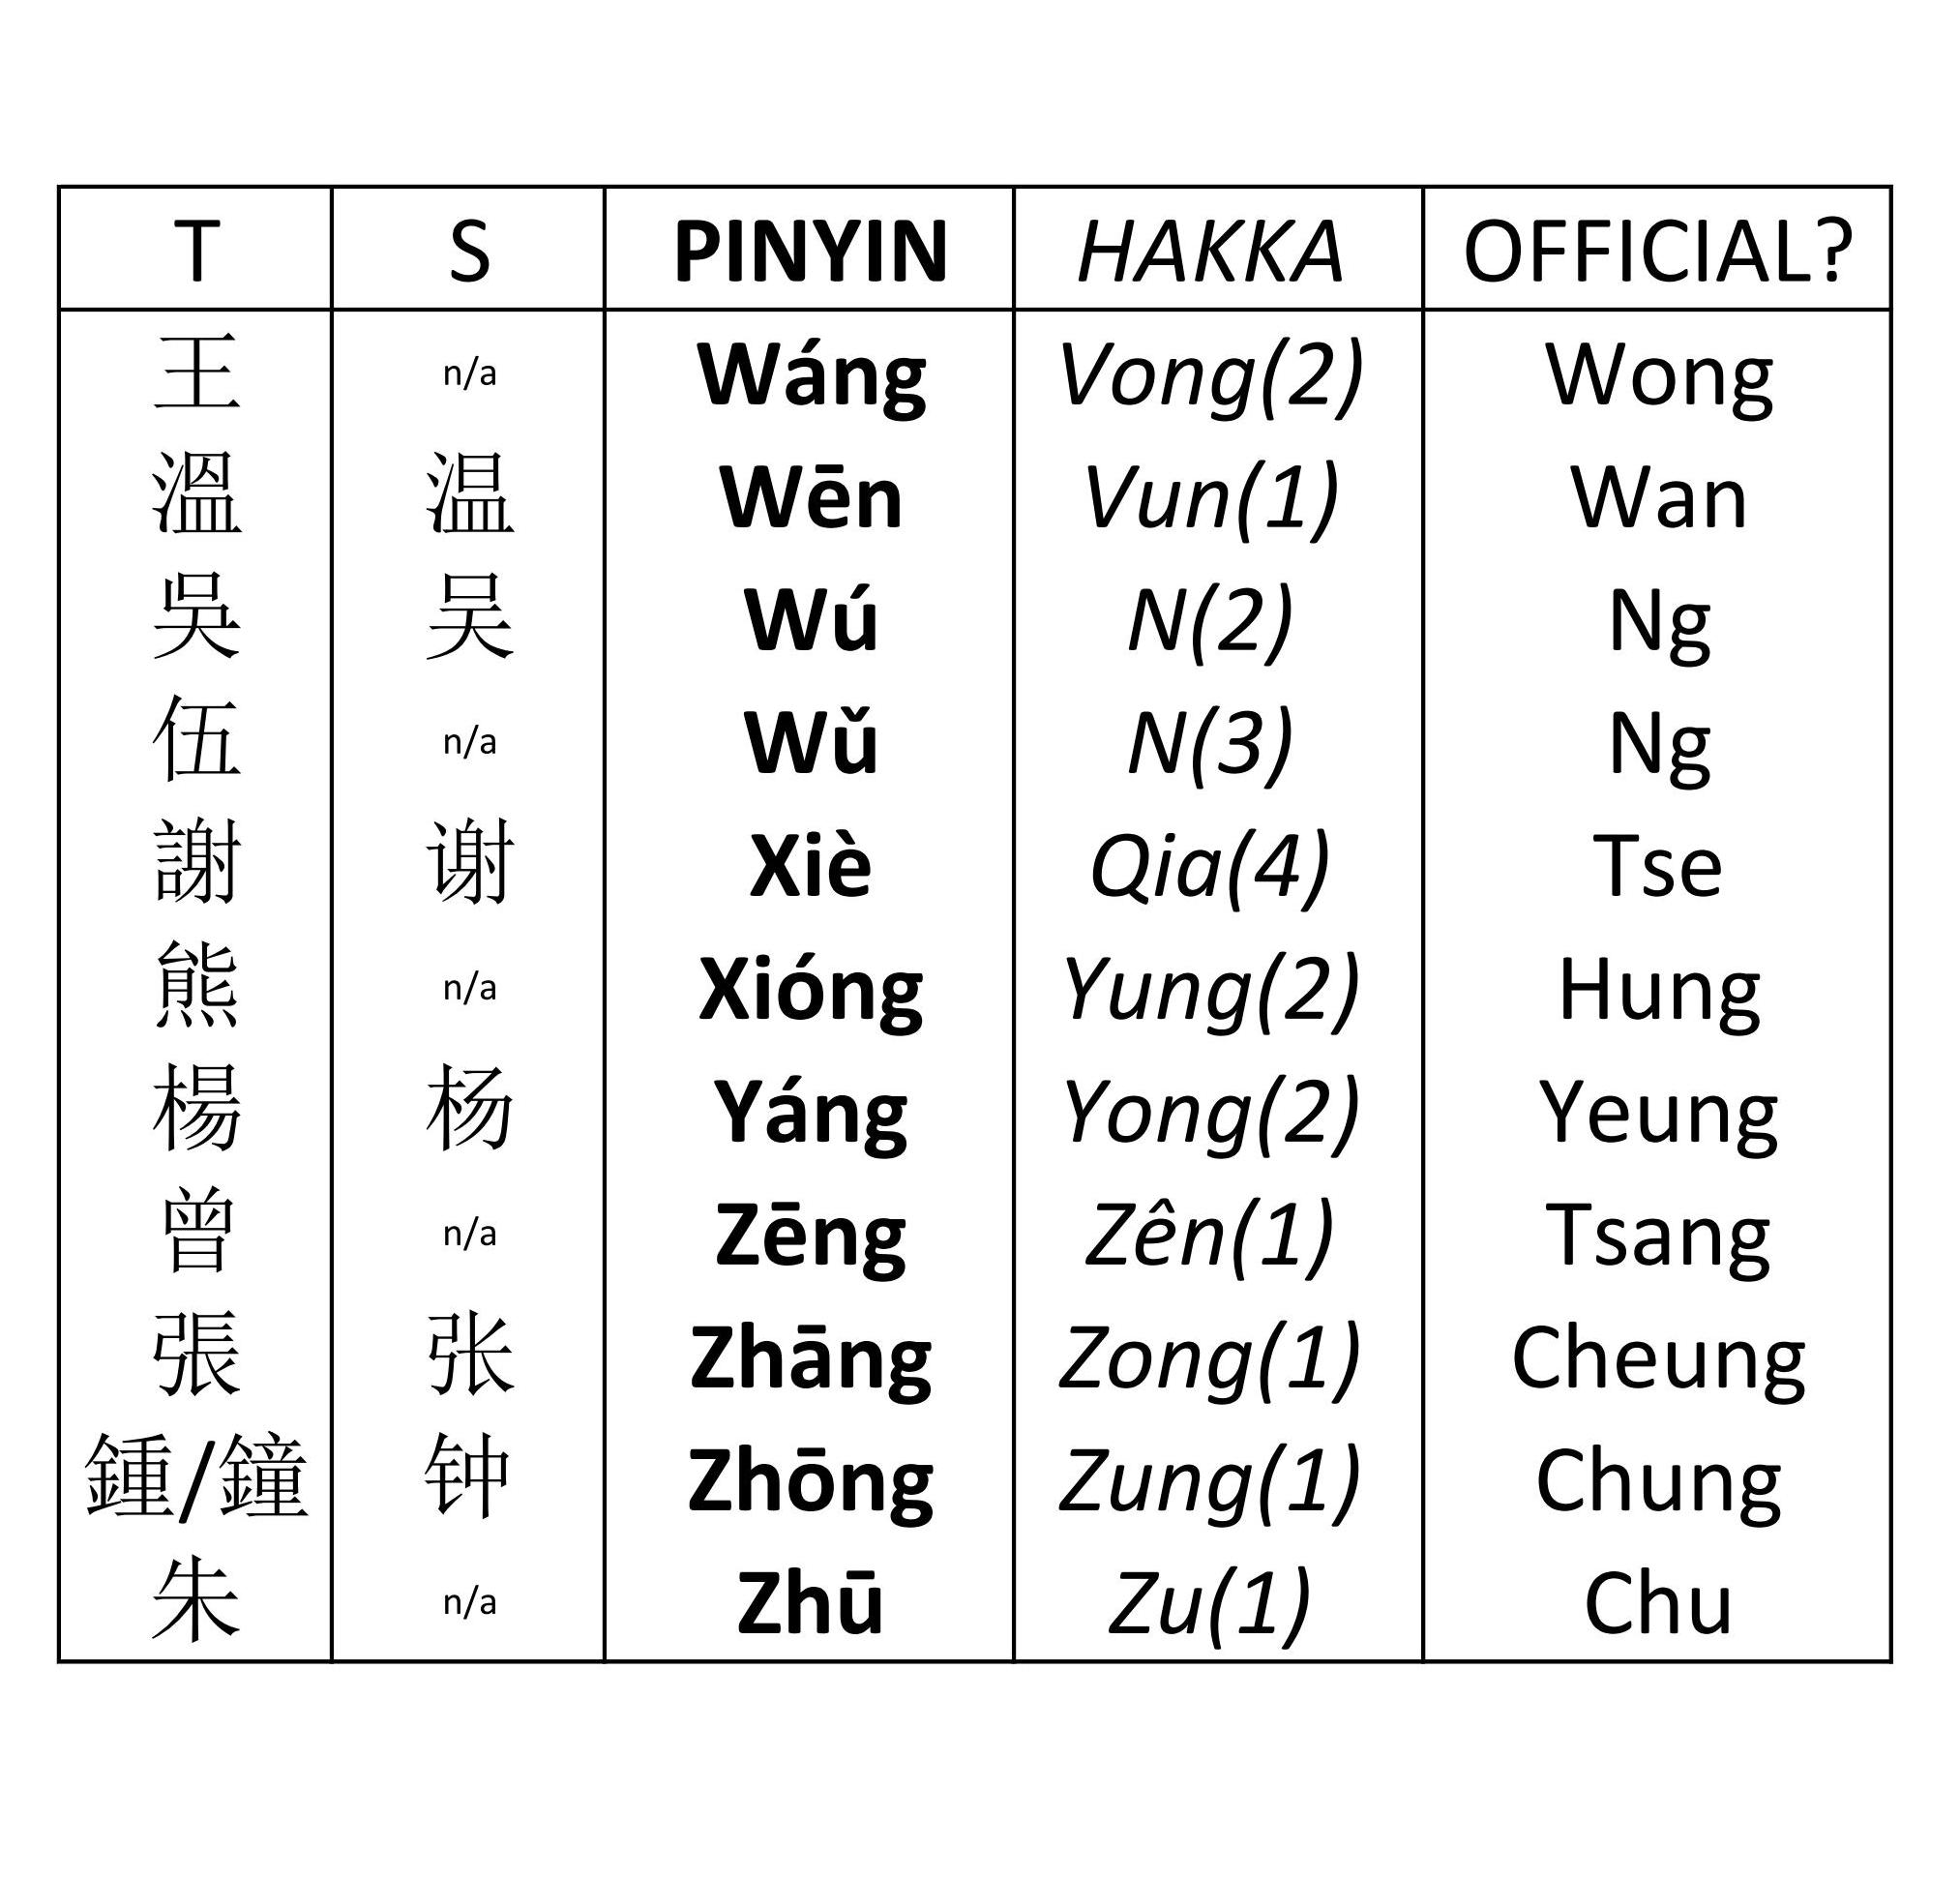 Hakka Surnames 2.jpeg